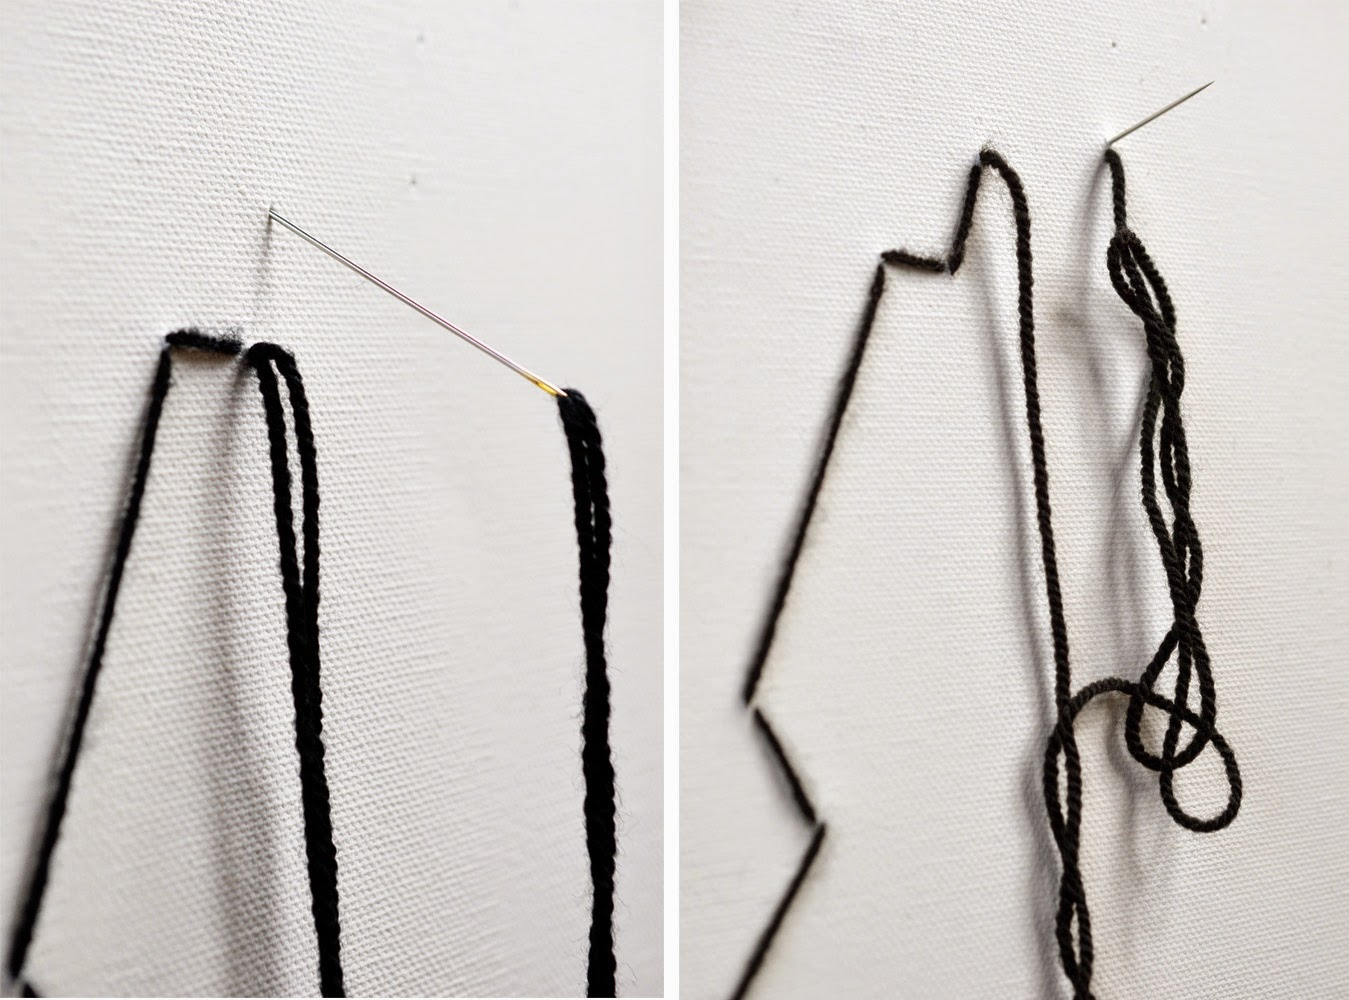 DIY Geometric String Art | Motte's Blog